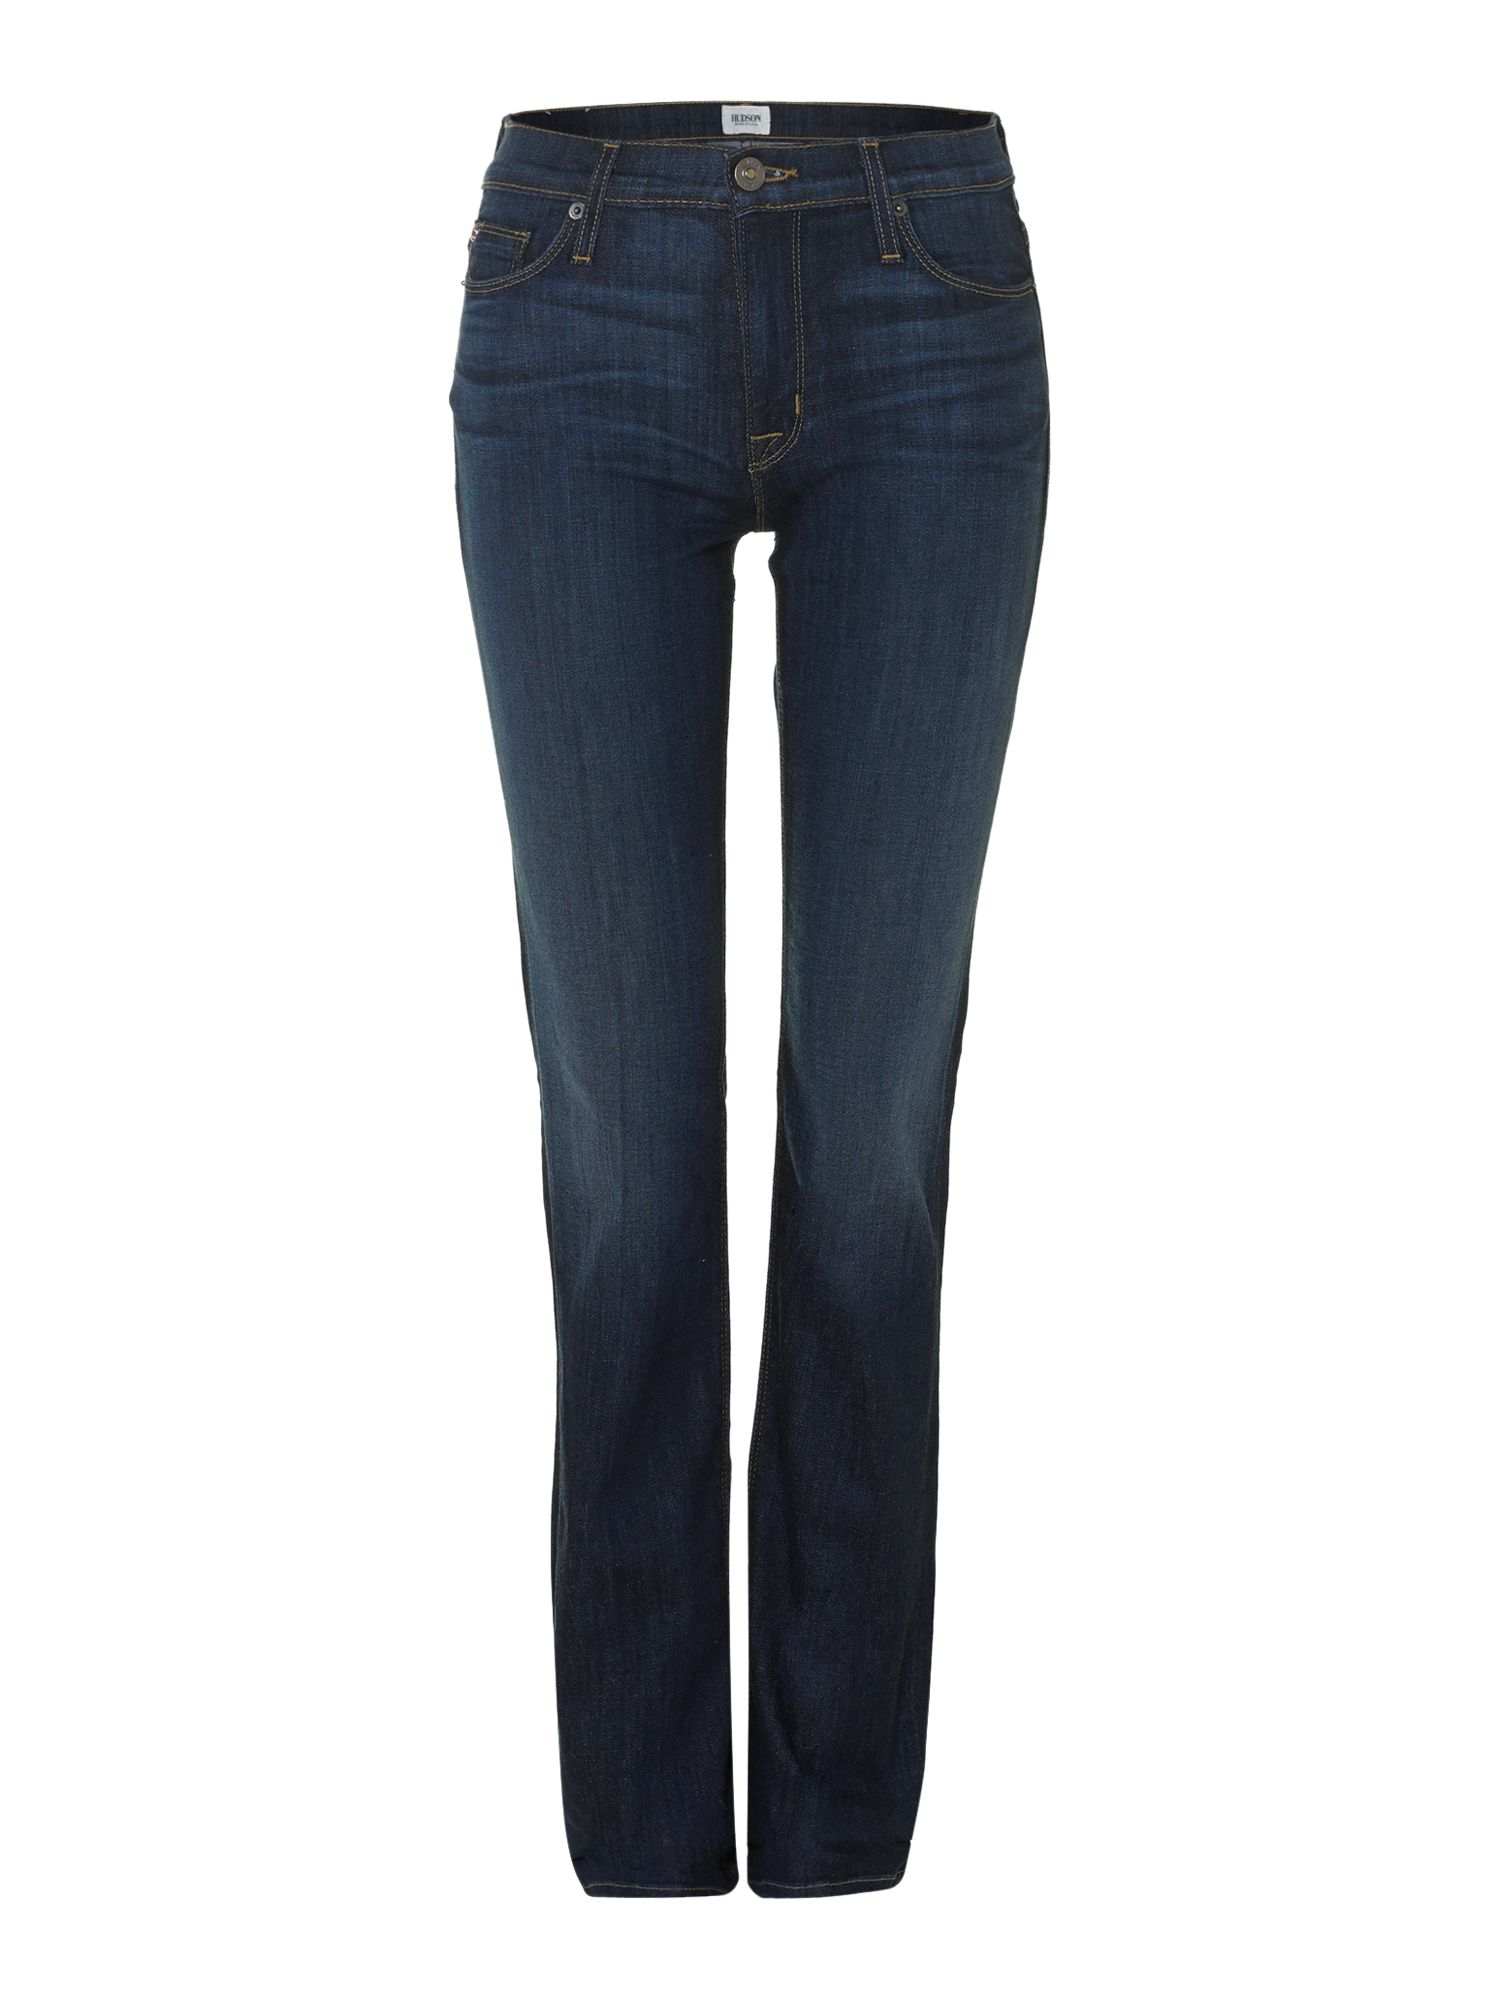 Tilda cigarette straight jeans in Siouxsie